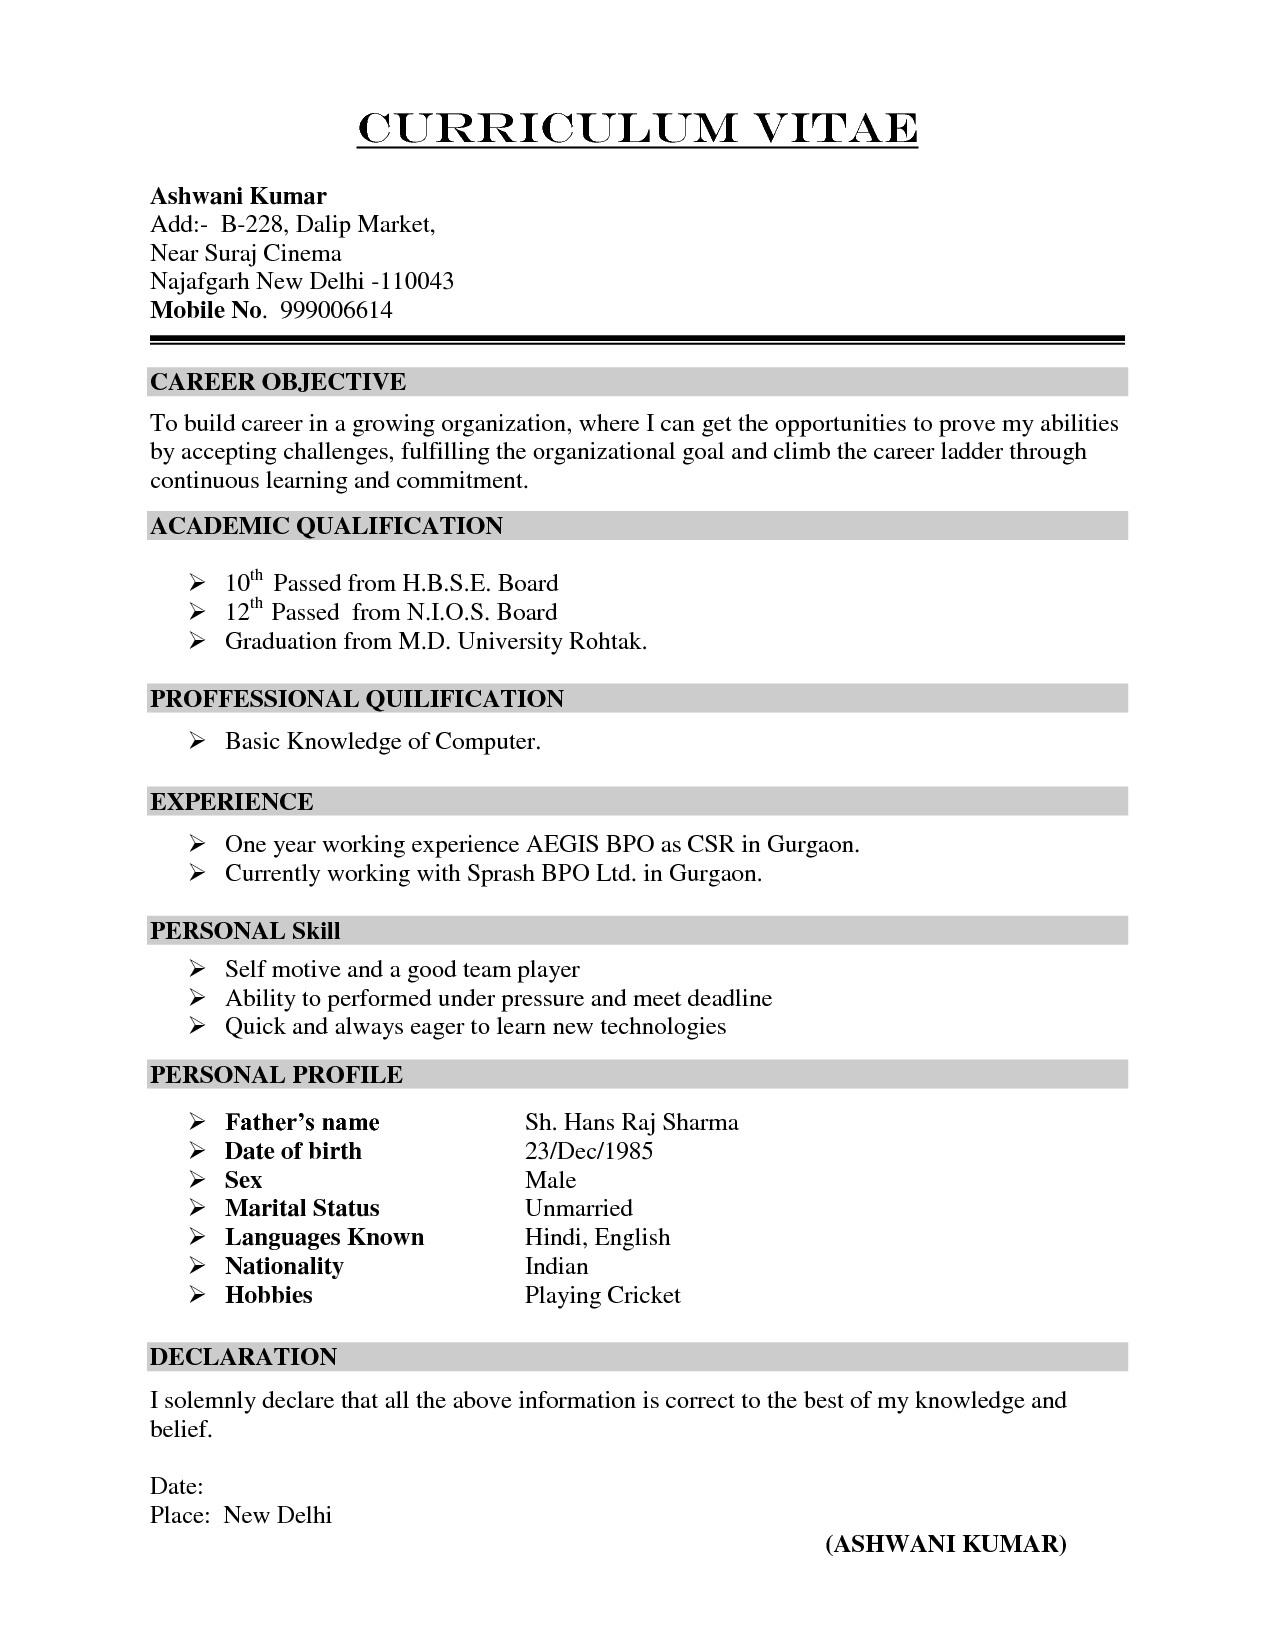 curriculum vitae format of accountant resume templates curriculum vitae format of accountant resume templates professional cv format